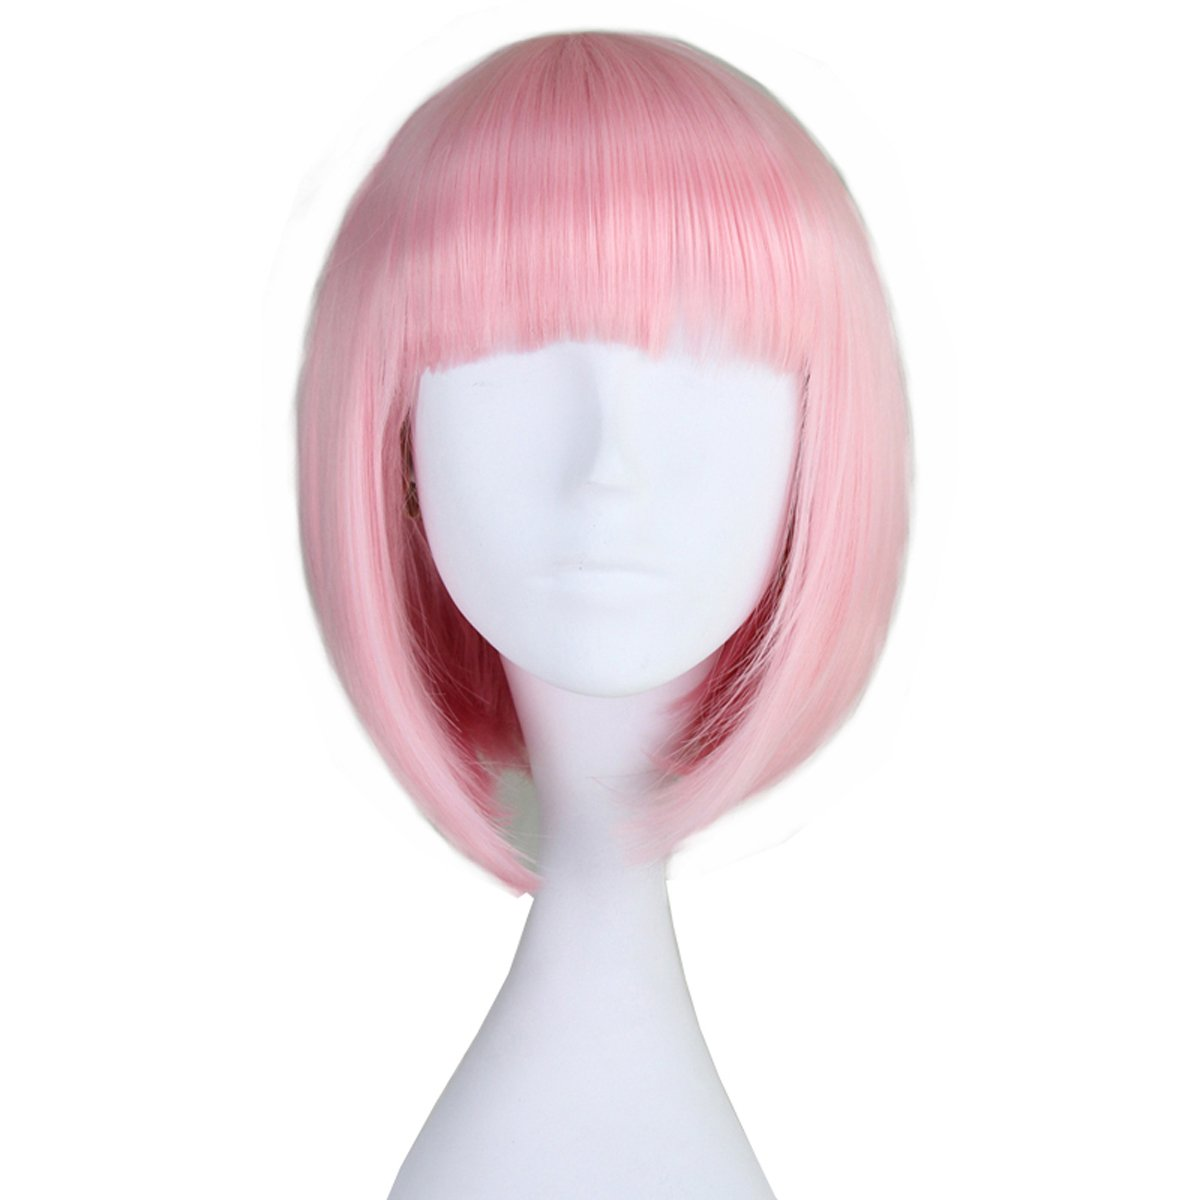 Miss U Hair Short Straight Harajuku Style Women Bob Hair Anime Cosplay Party Wig Unisex(Black) Generic C372-A01